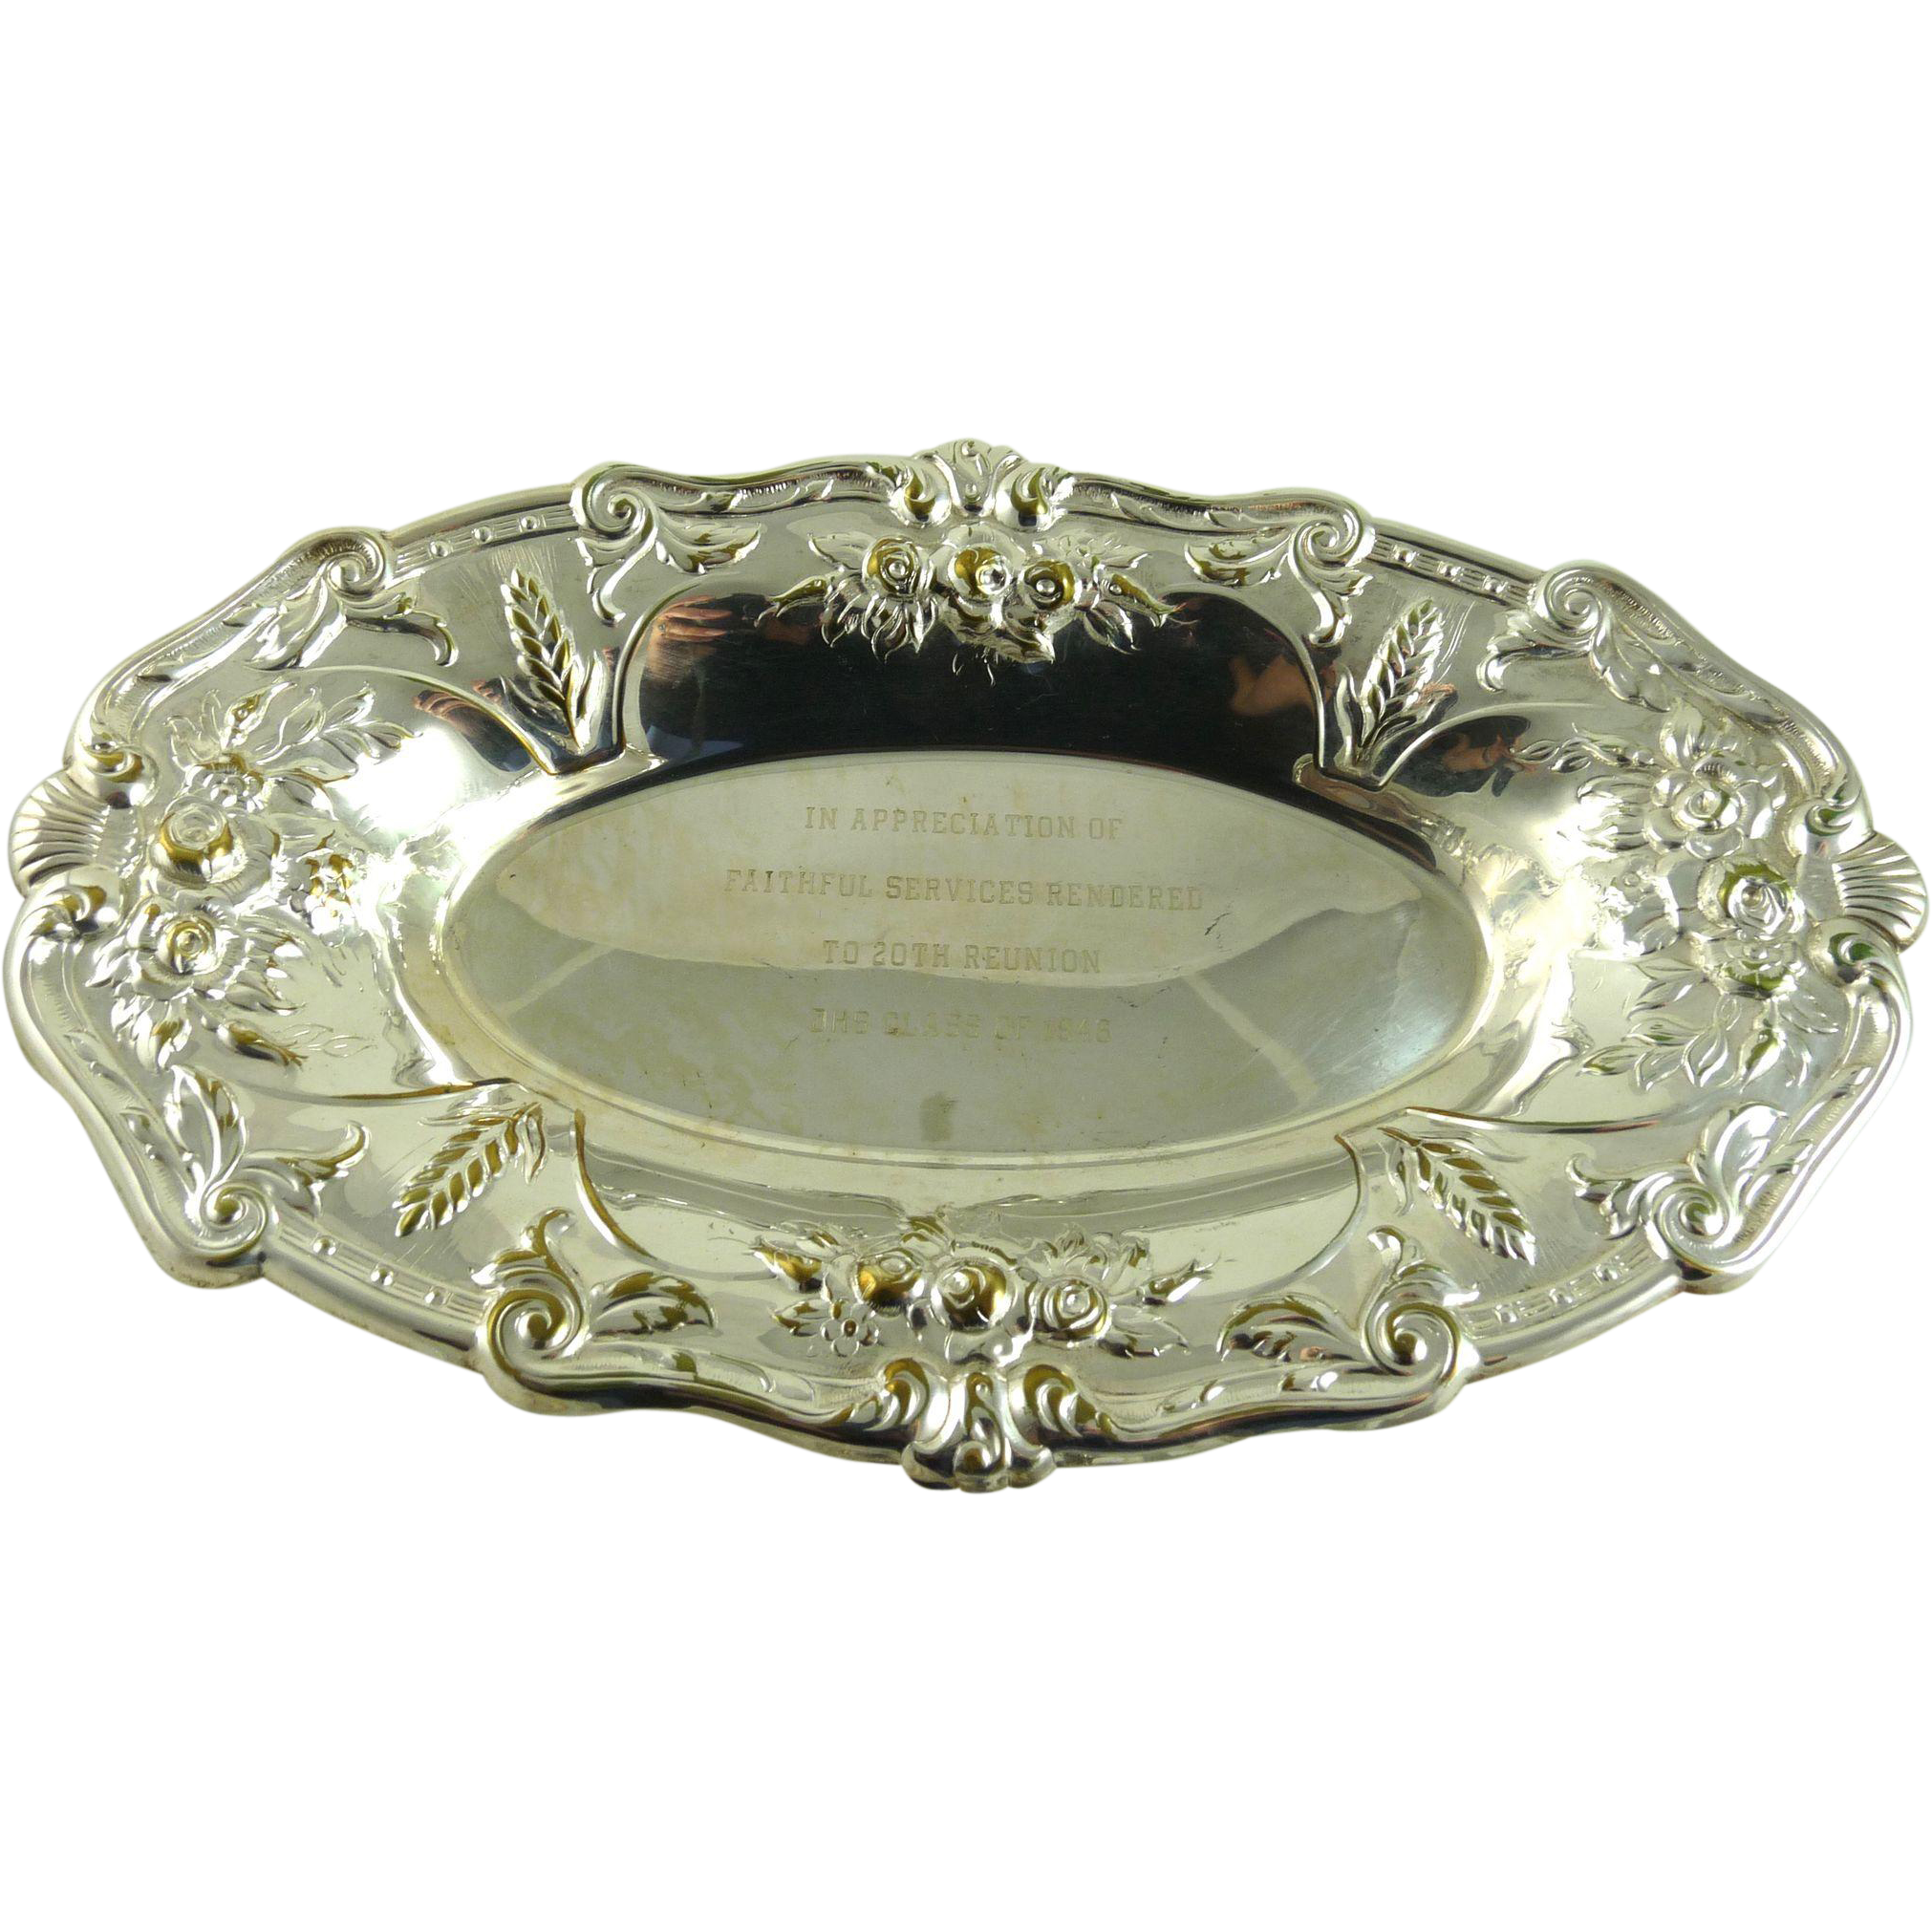 Vintage Silverplate Bread Tray